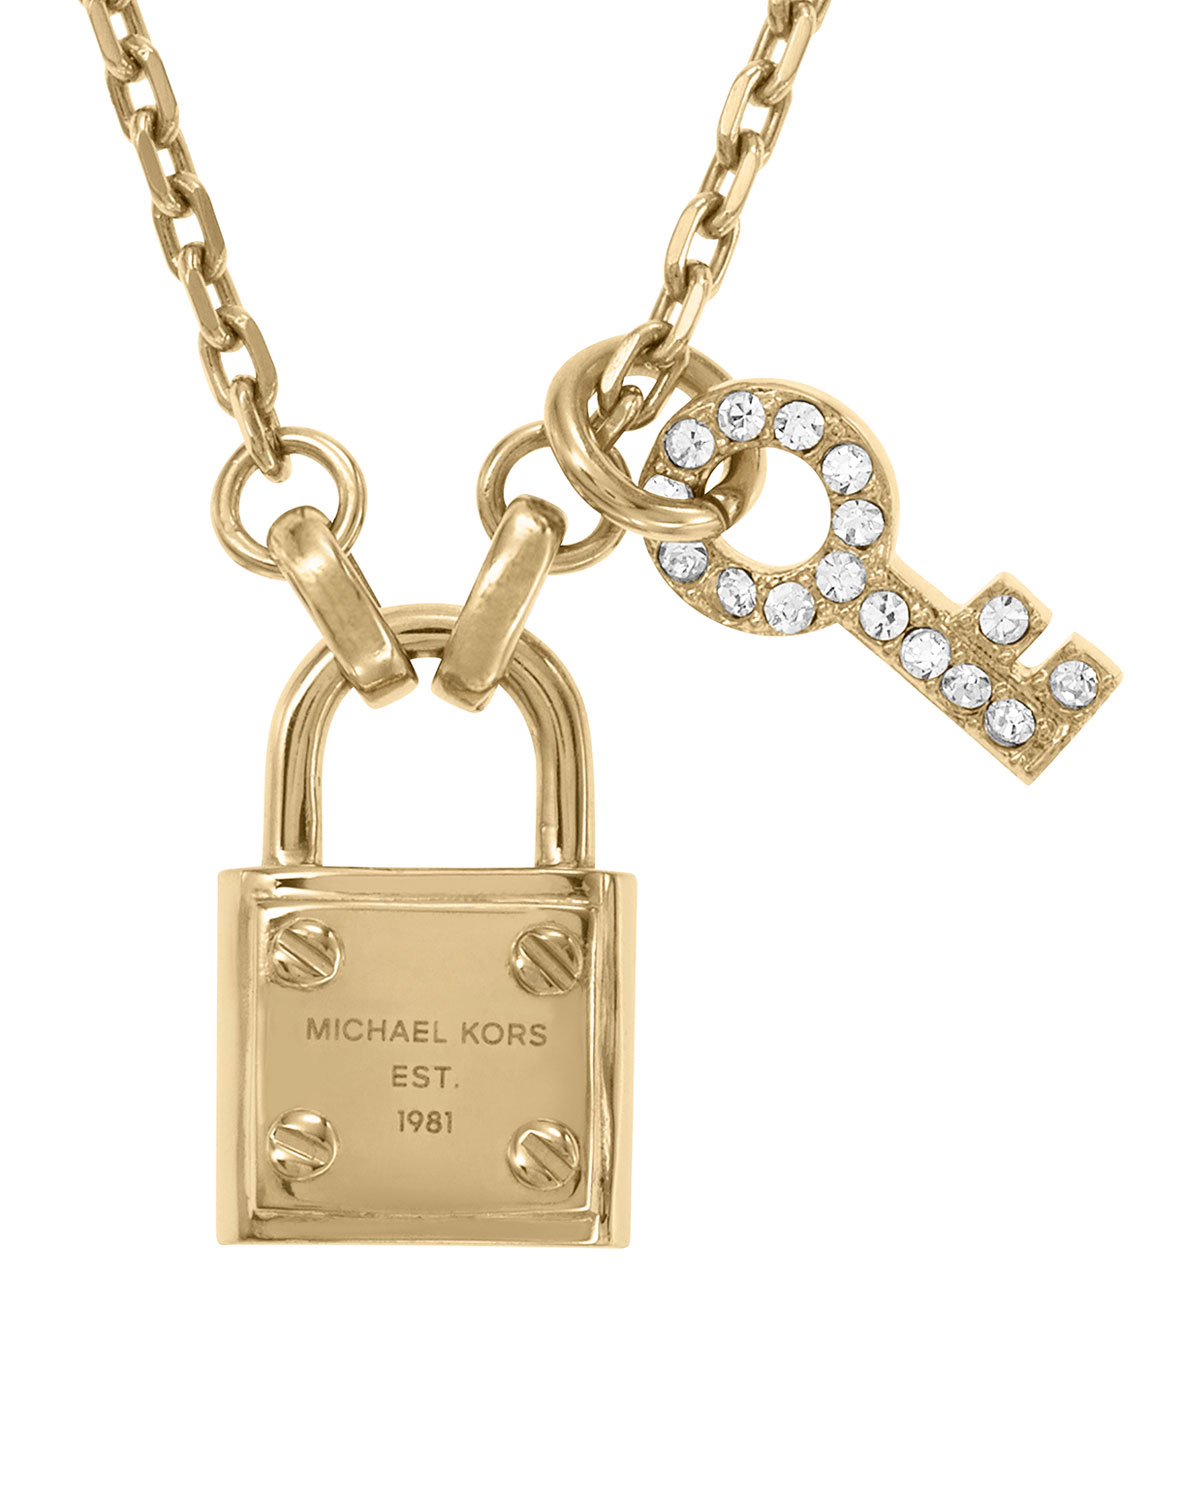 8e5d59909ae61 Lyst - Michael Kors Lock Key Pendant Necklace Golden in Metallic